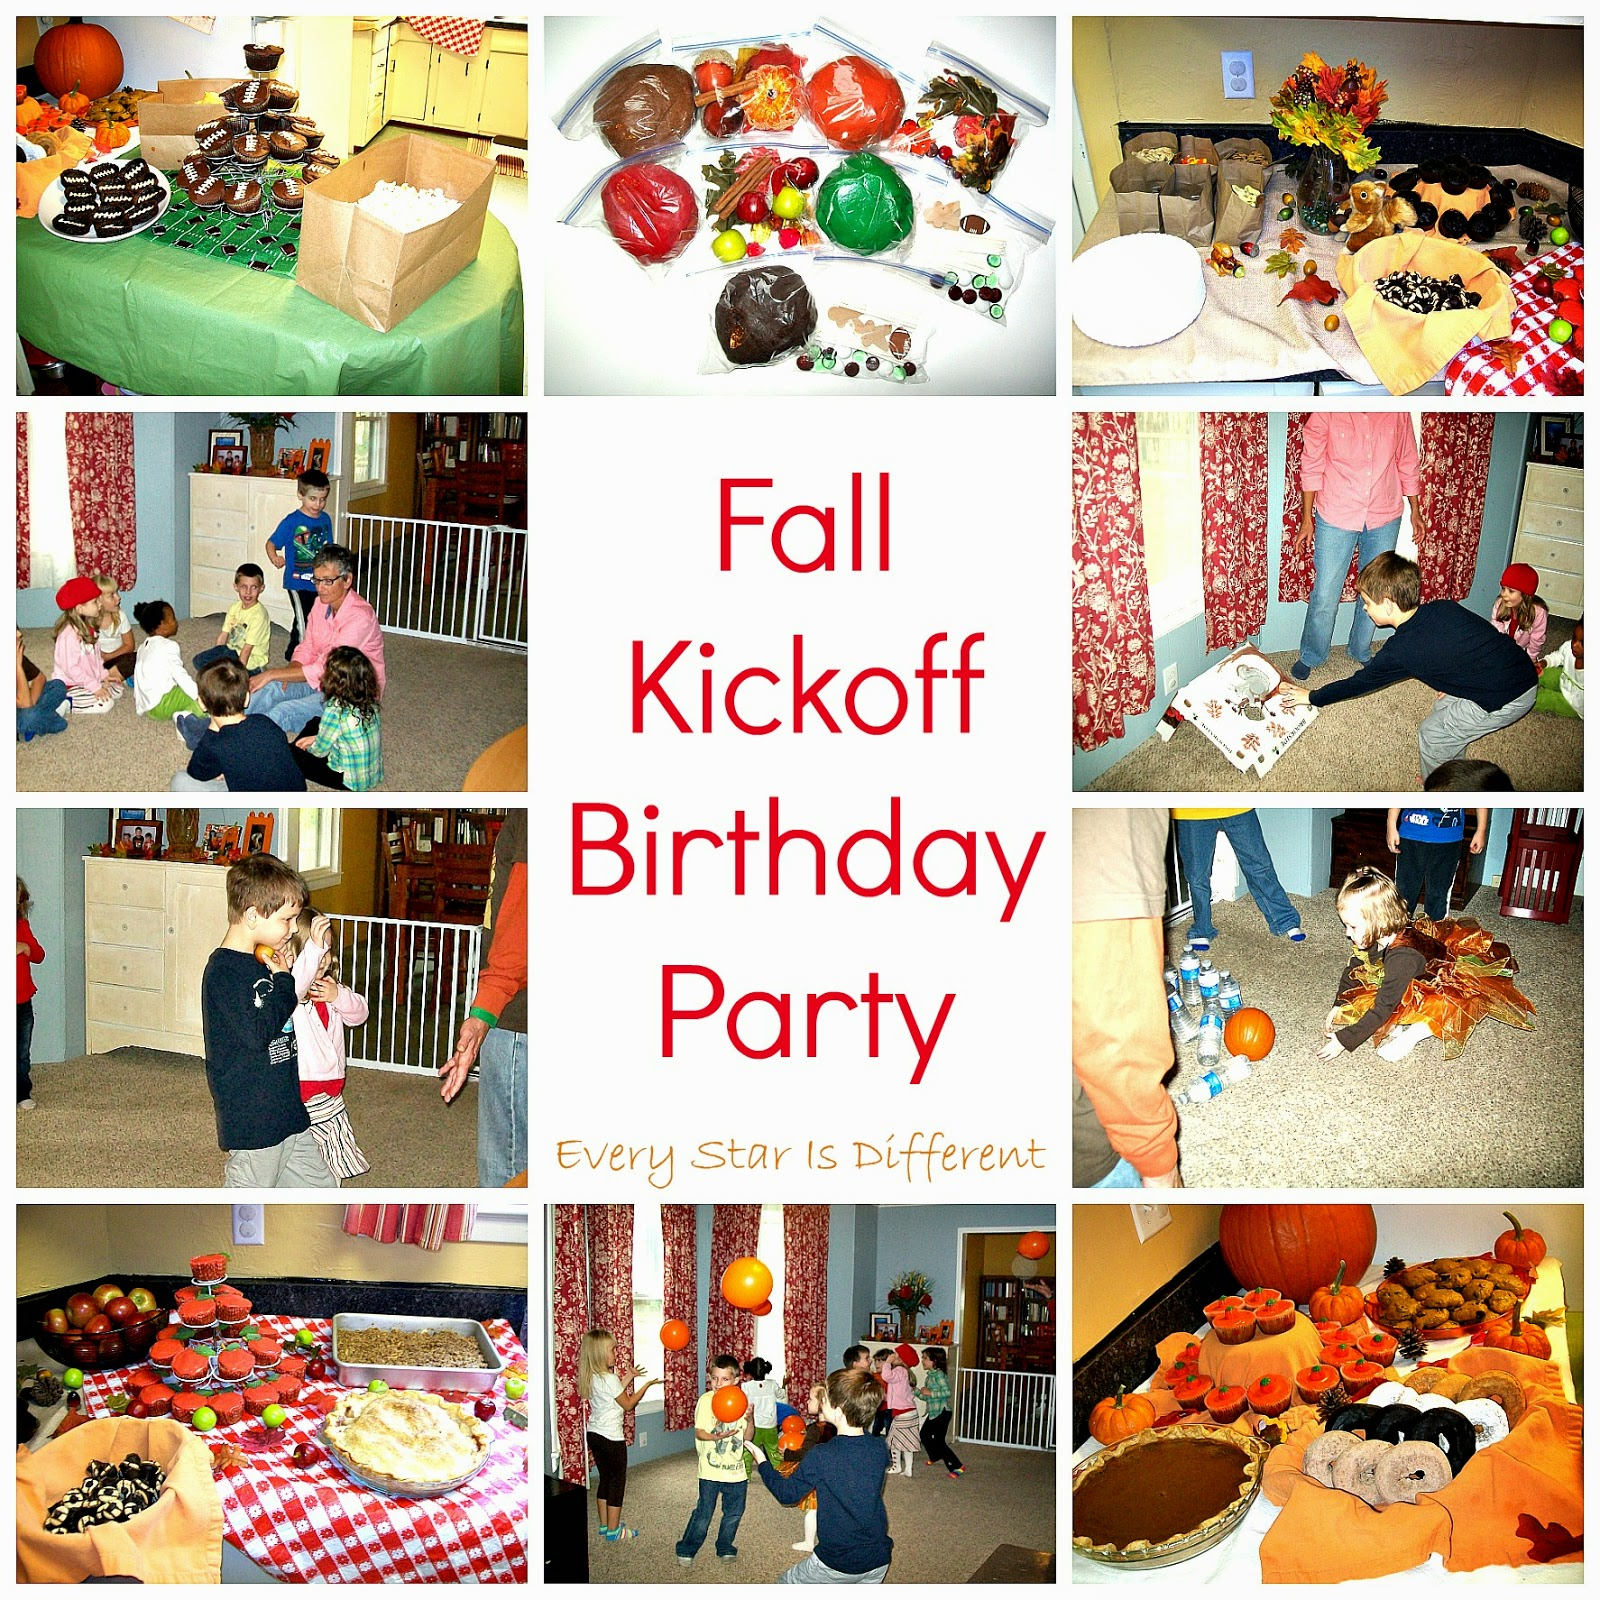 A Fall Kickoff Birthday Party